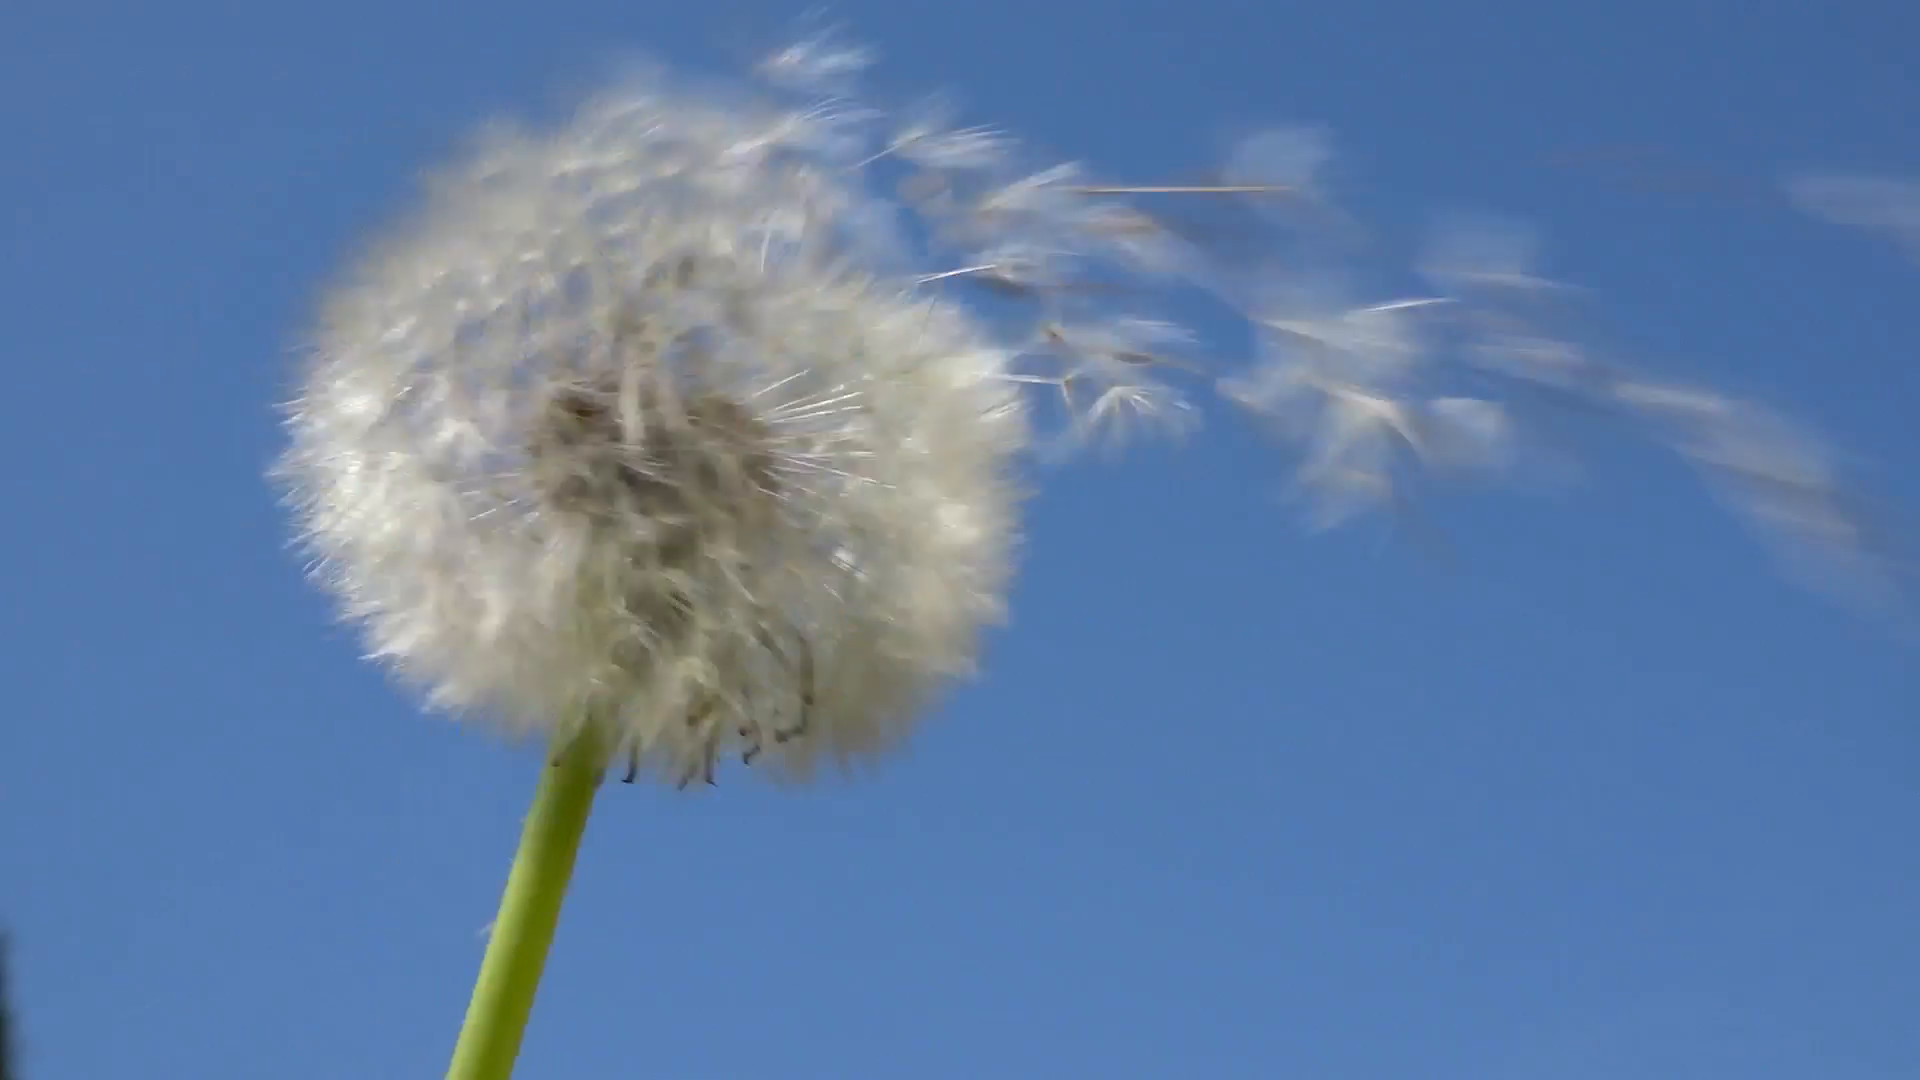 Res: 1920x1080, Blowing on a dandelion head on blue sky background Stock Video Footage -  Videoblocks